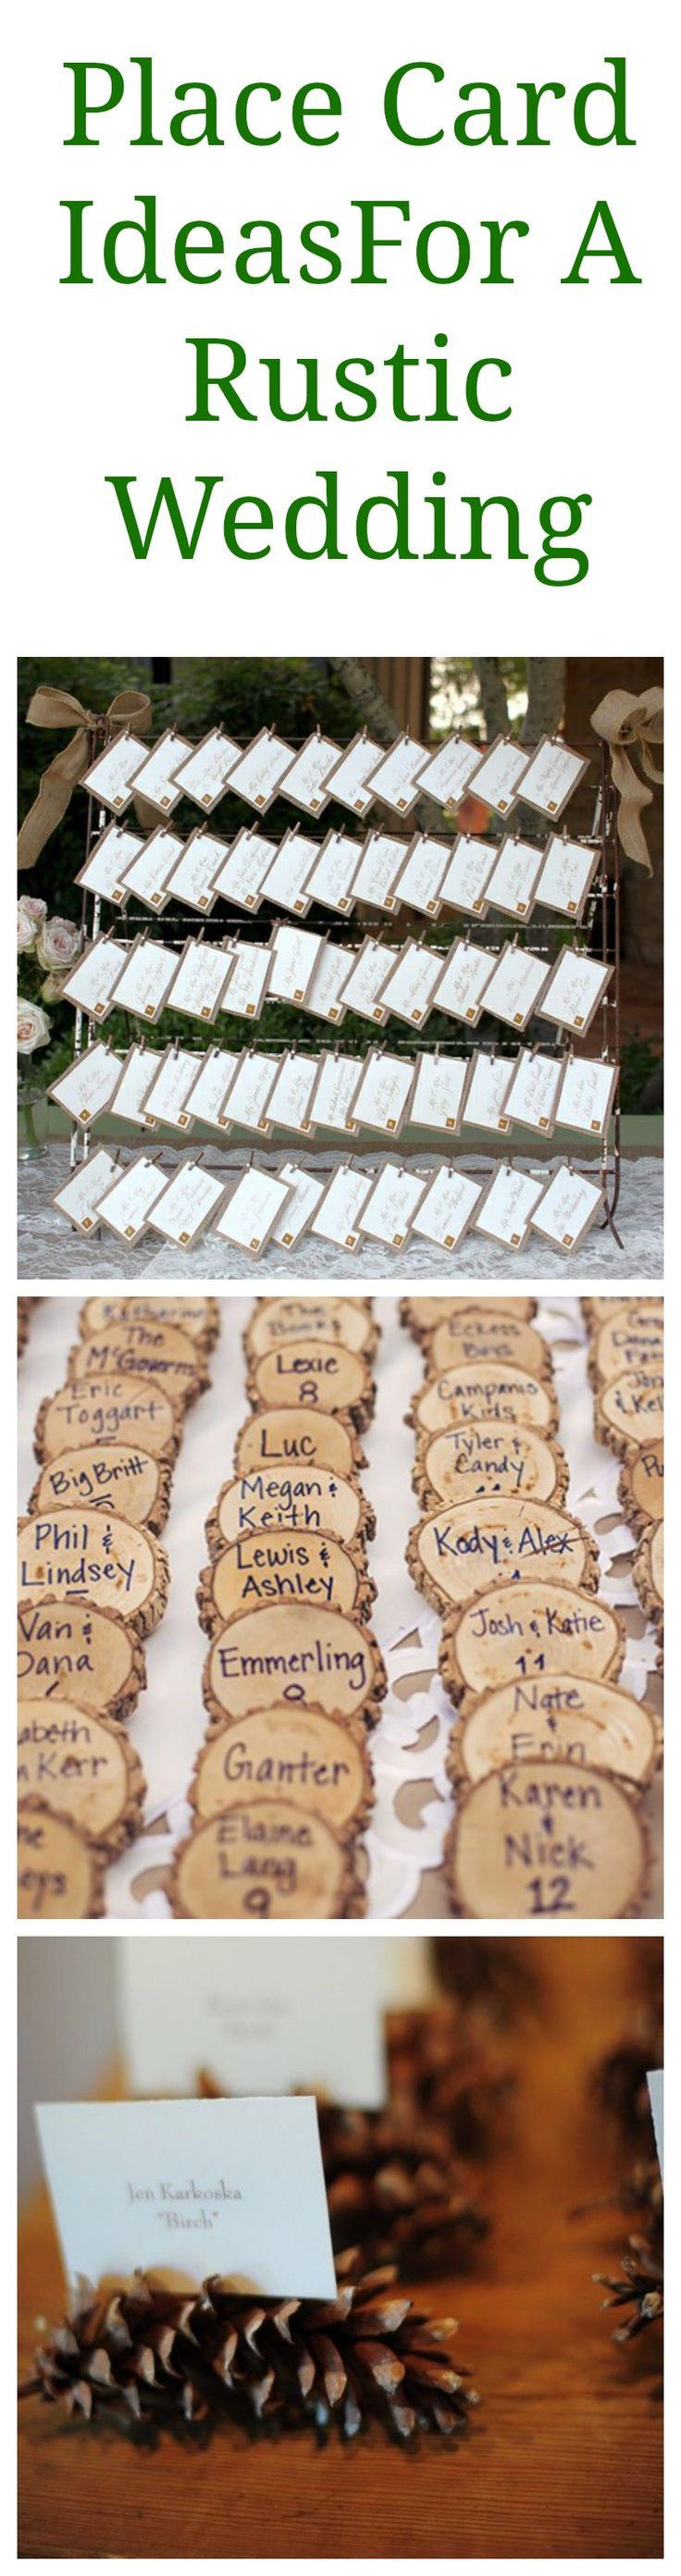 Rustic Wedding Place Card Ideas-love the pine cone idea..we could spray paint them with yellow and glitter